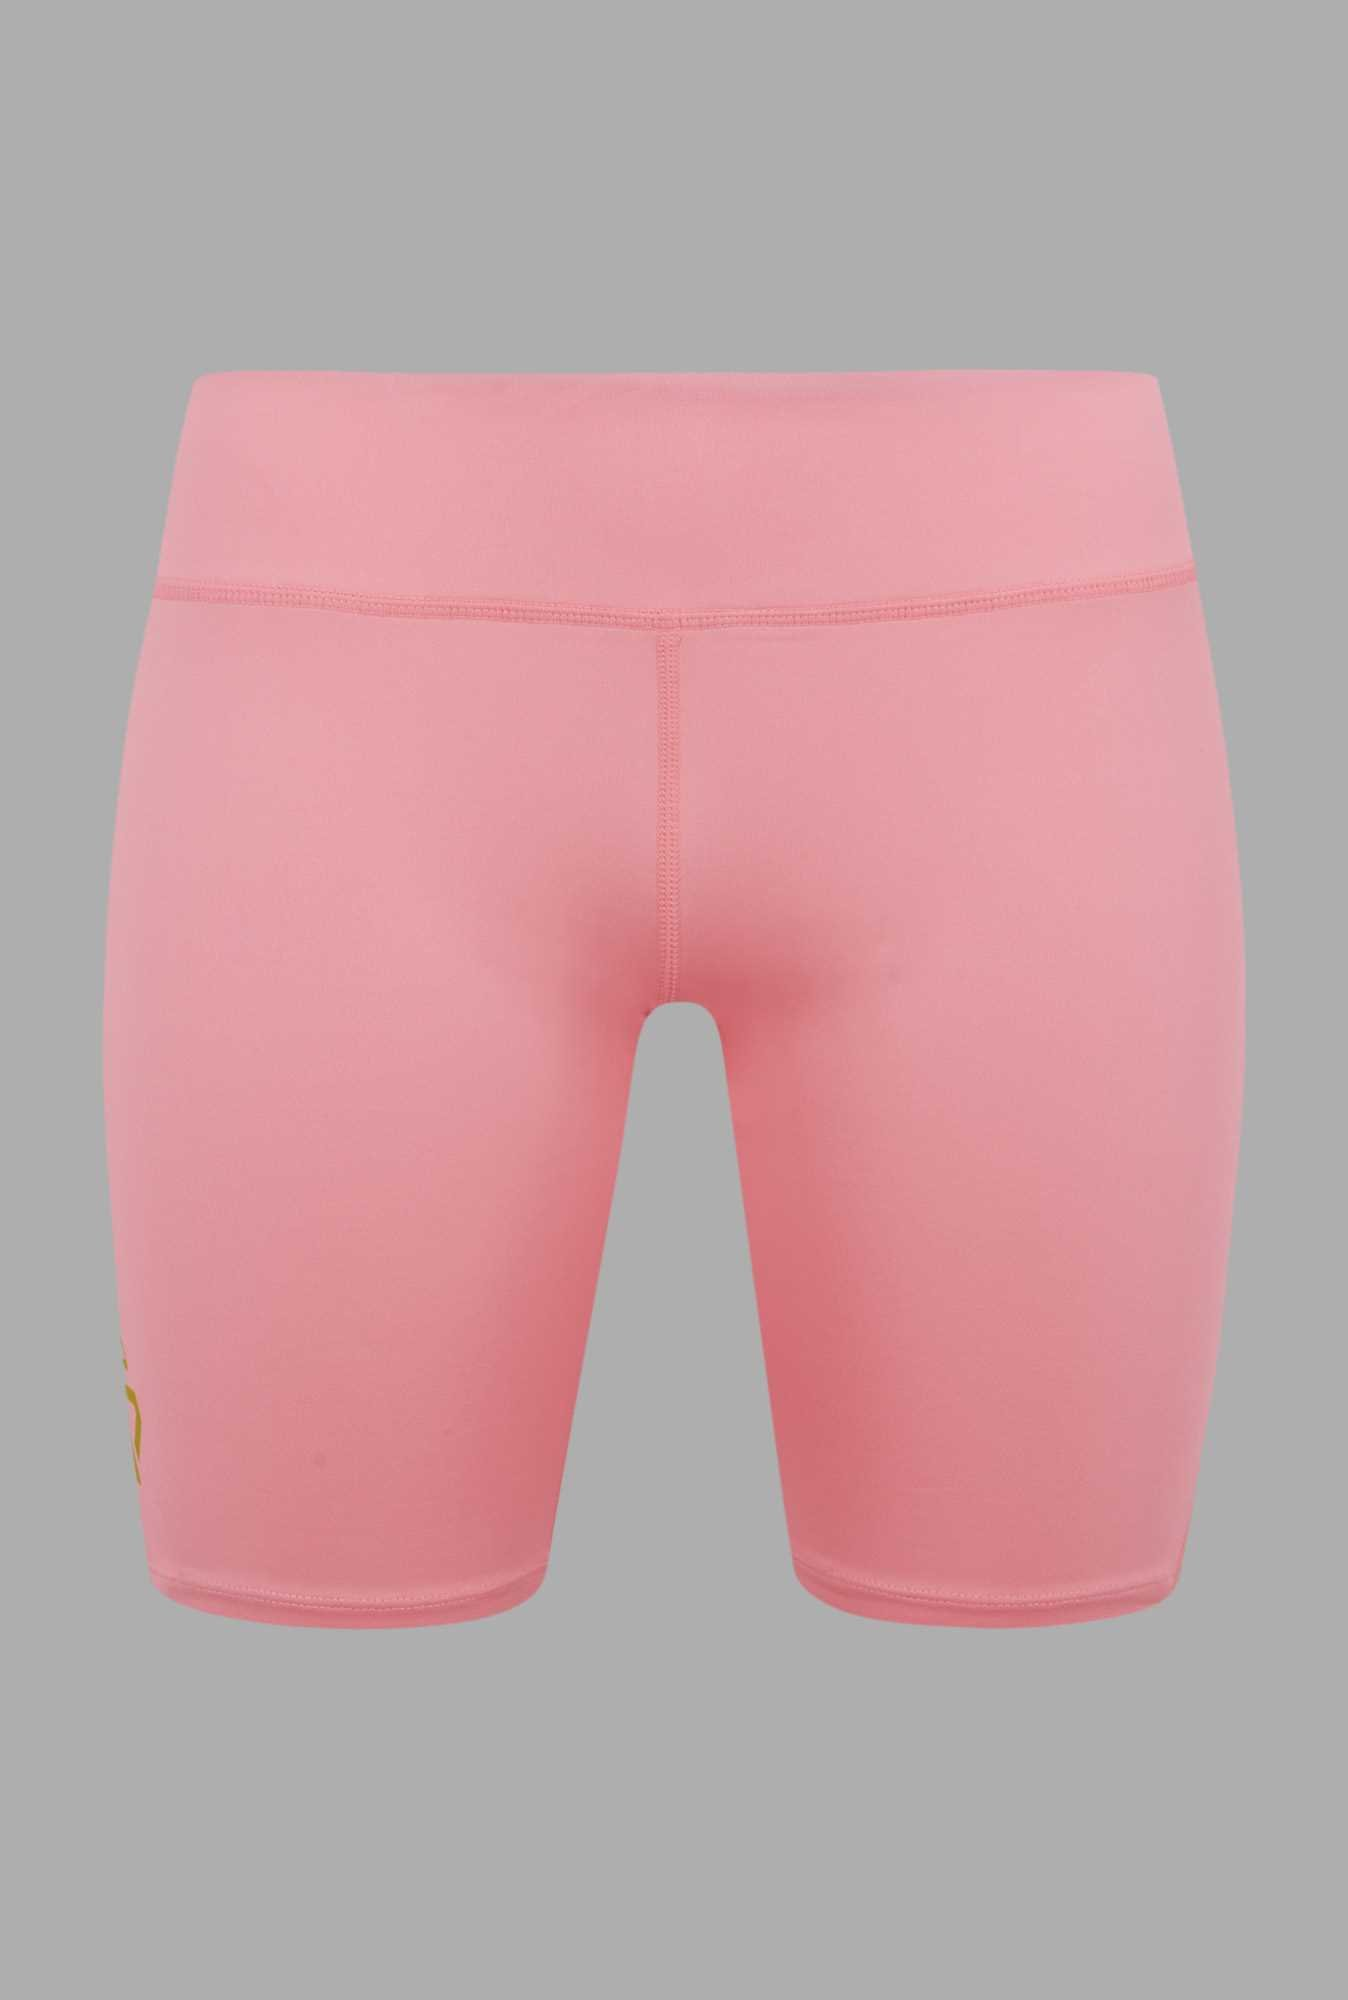 Outpace Coral Solid Running Shorts